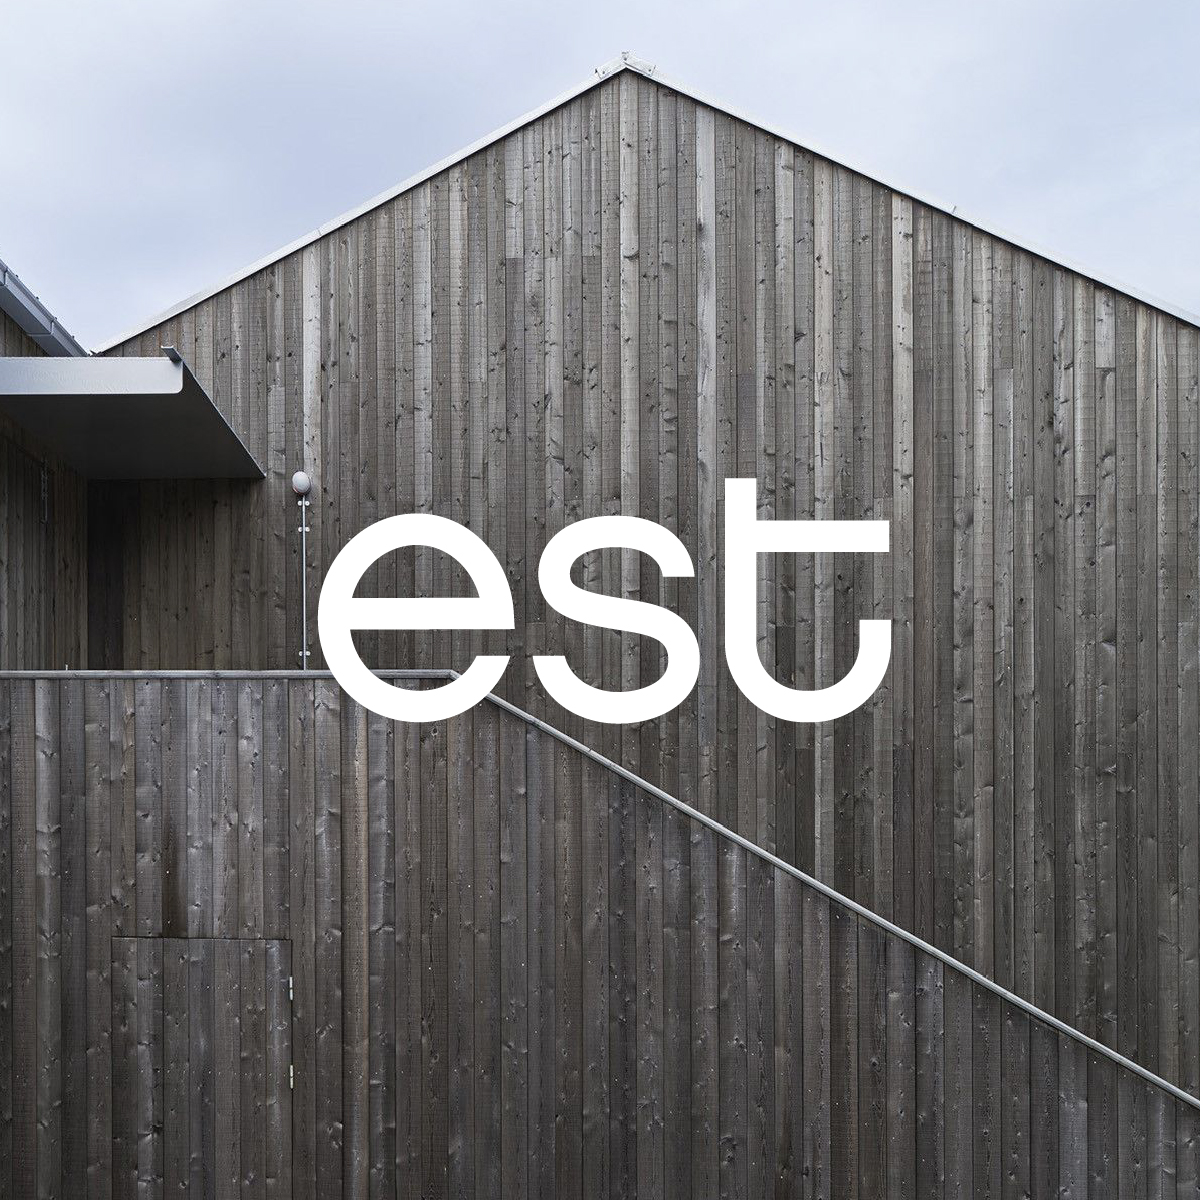 est brand mark over a timber architectural image